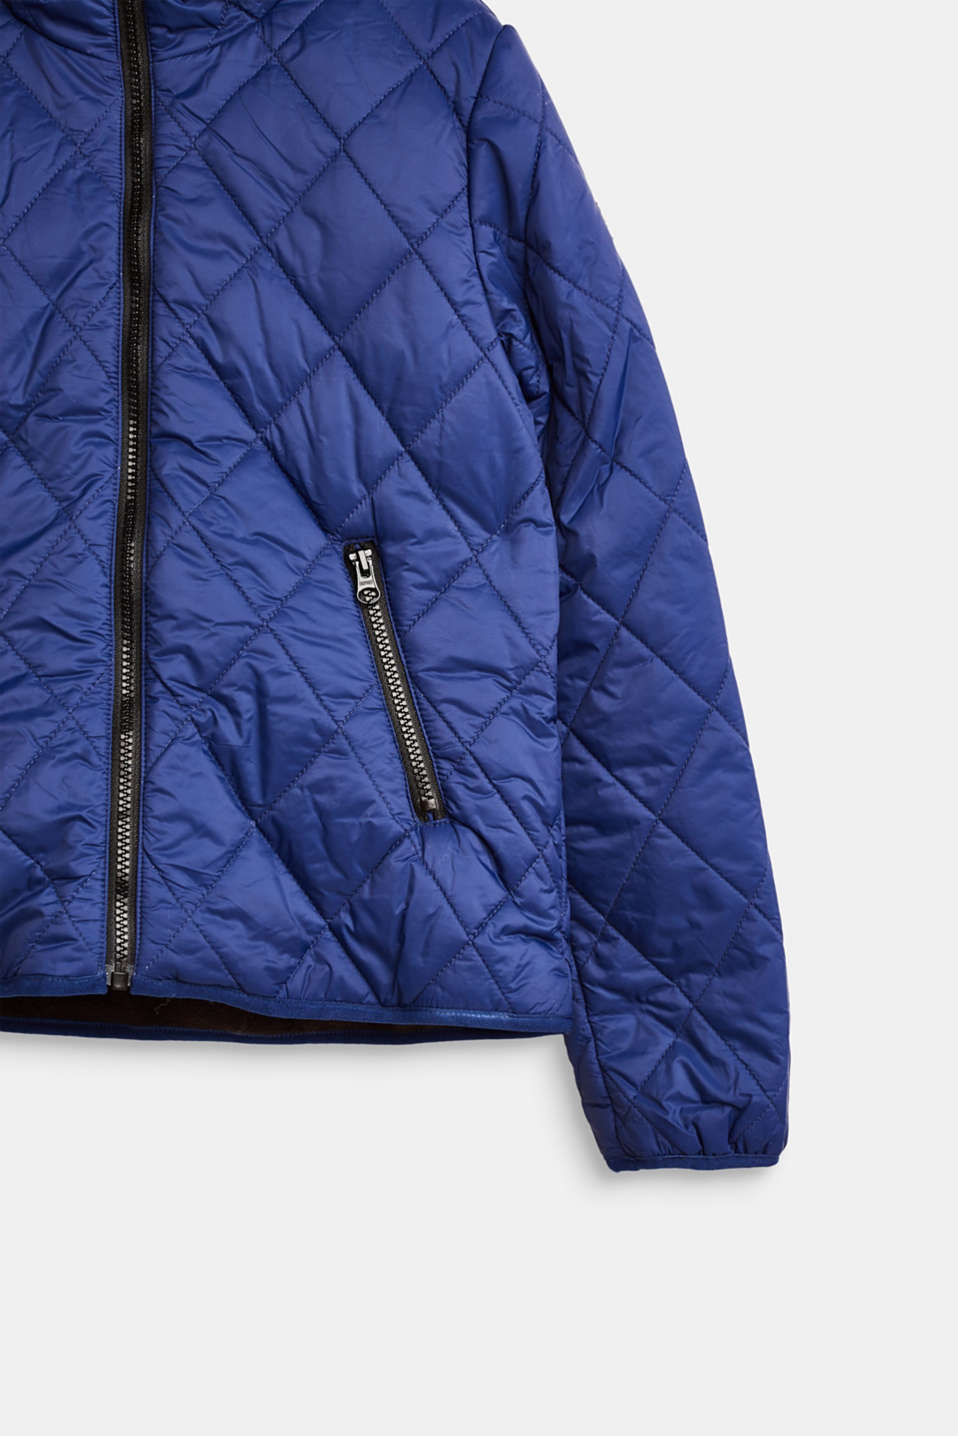 Jackets outdoor woven, LCMARINE BLUE, detail image number 3